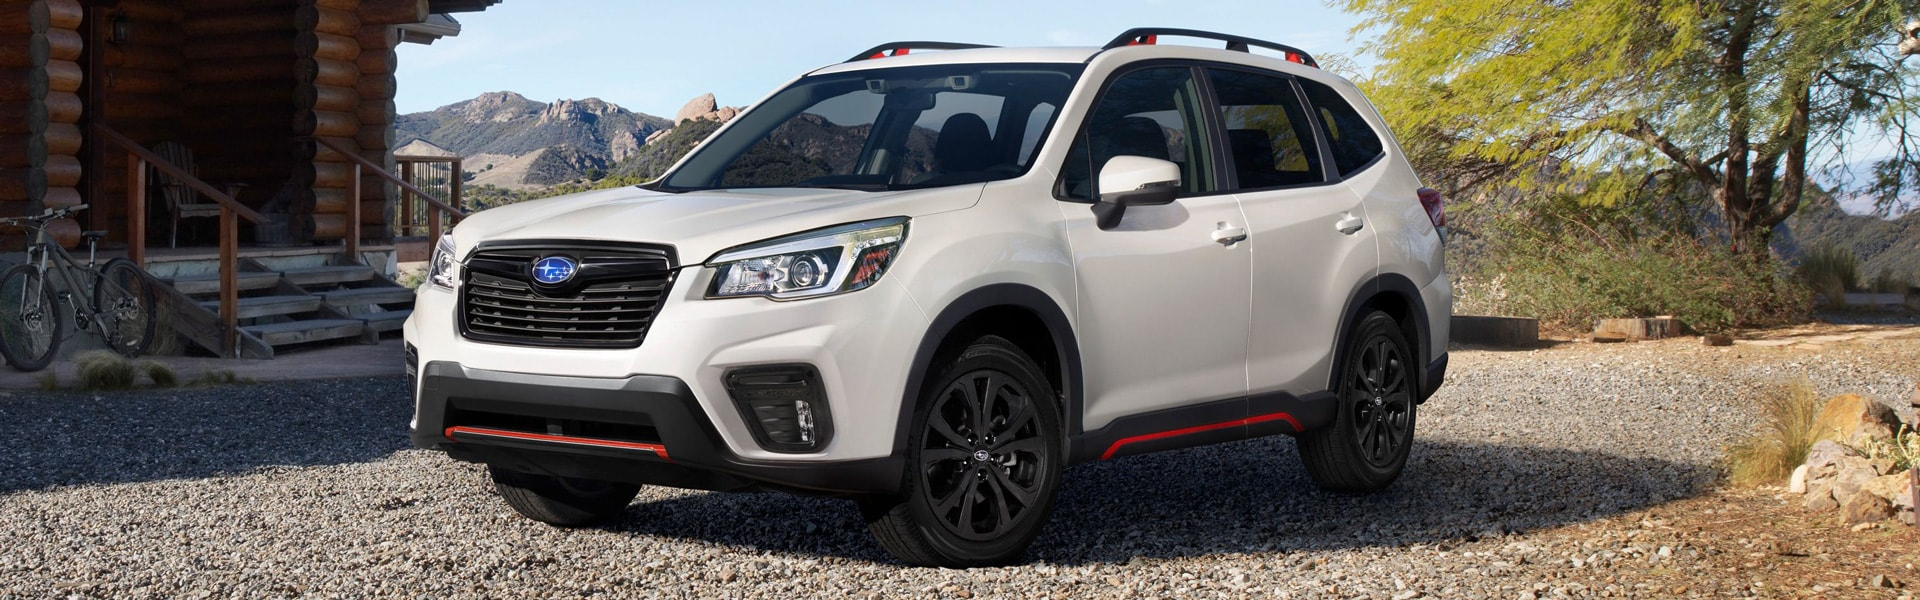 2021 Subaru Forester for sale in Midland, TX